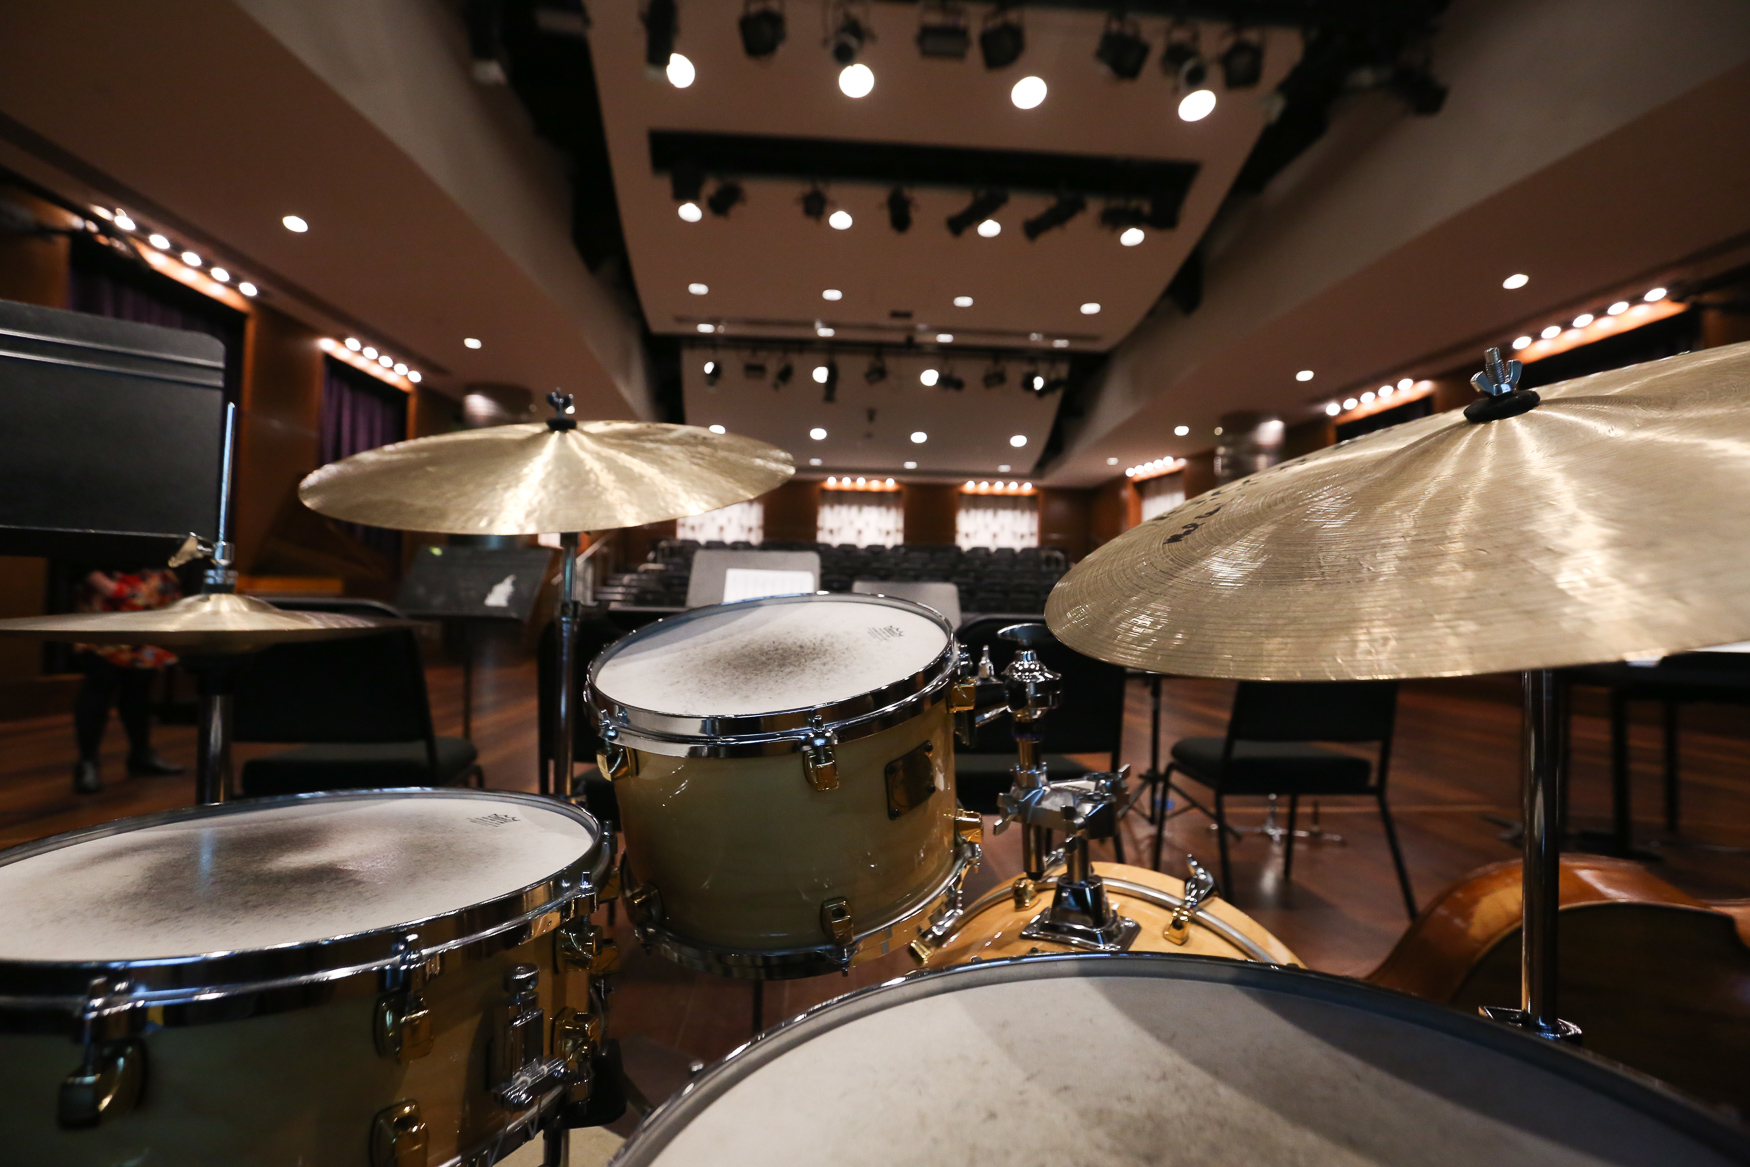 The Nicholas F. and Eugenia Taubman Hall of Music features live performances from a jazz orchestra and a chamber ensemble.{ } (Amanda Andrade-Rhoades/DC Refined)